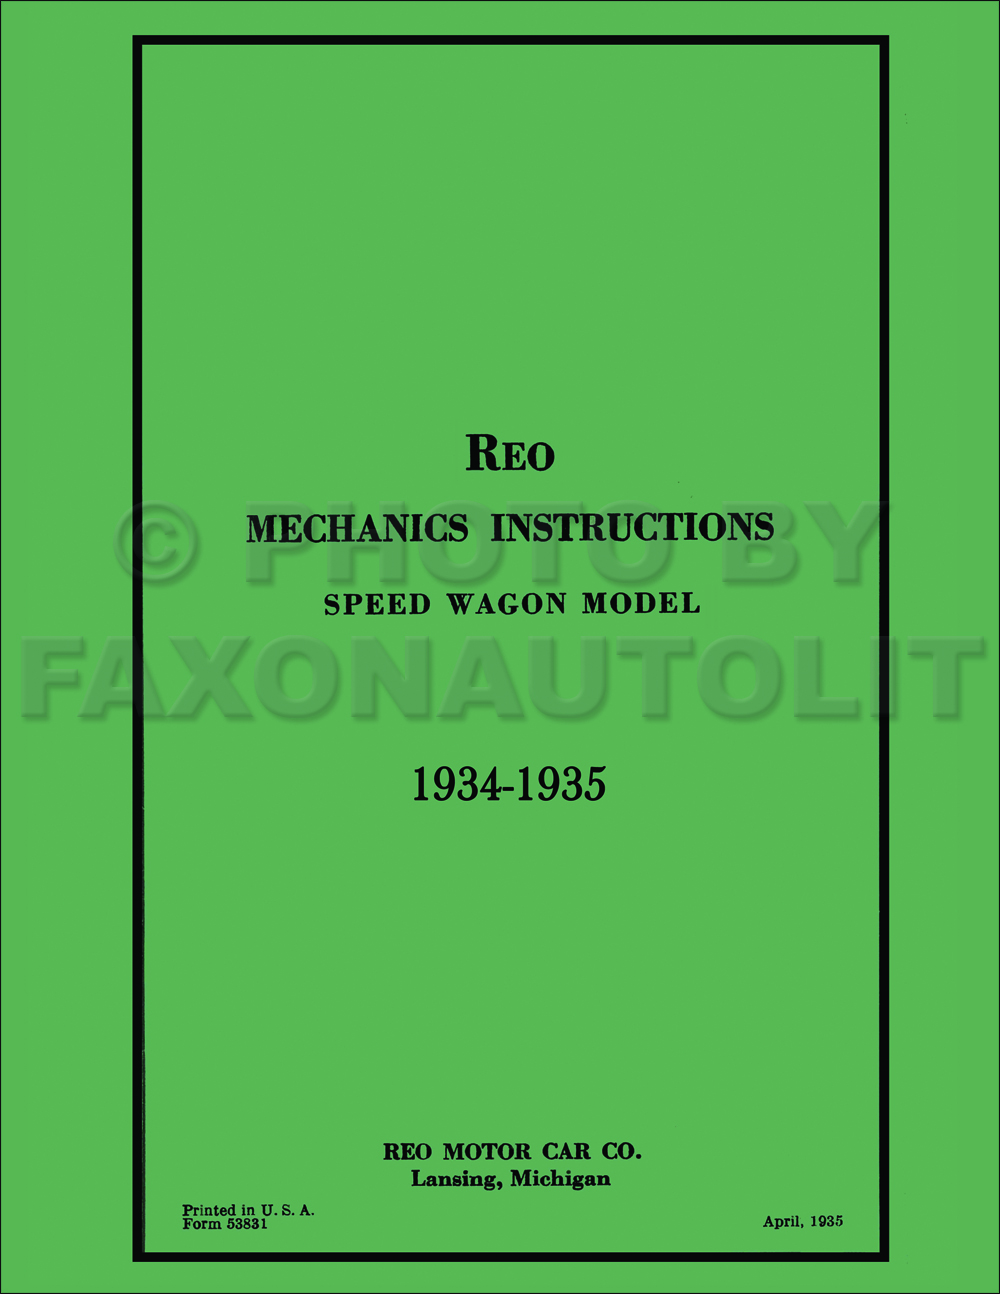 1951 Reo Wiring Diagram Another Blog About Ford 1910 Tractor 1934 1935 Speedwagon Repair Shop Manual Set Reprint Rh Faxonautoliterature Com